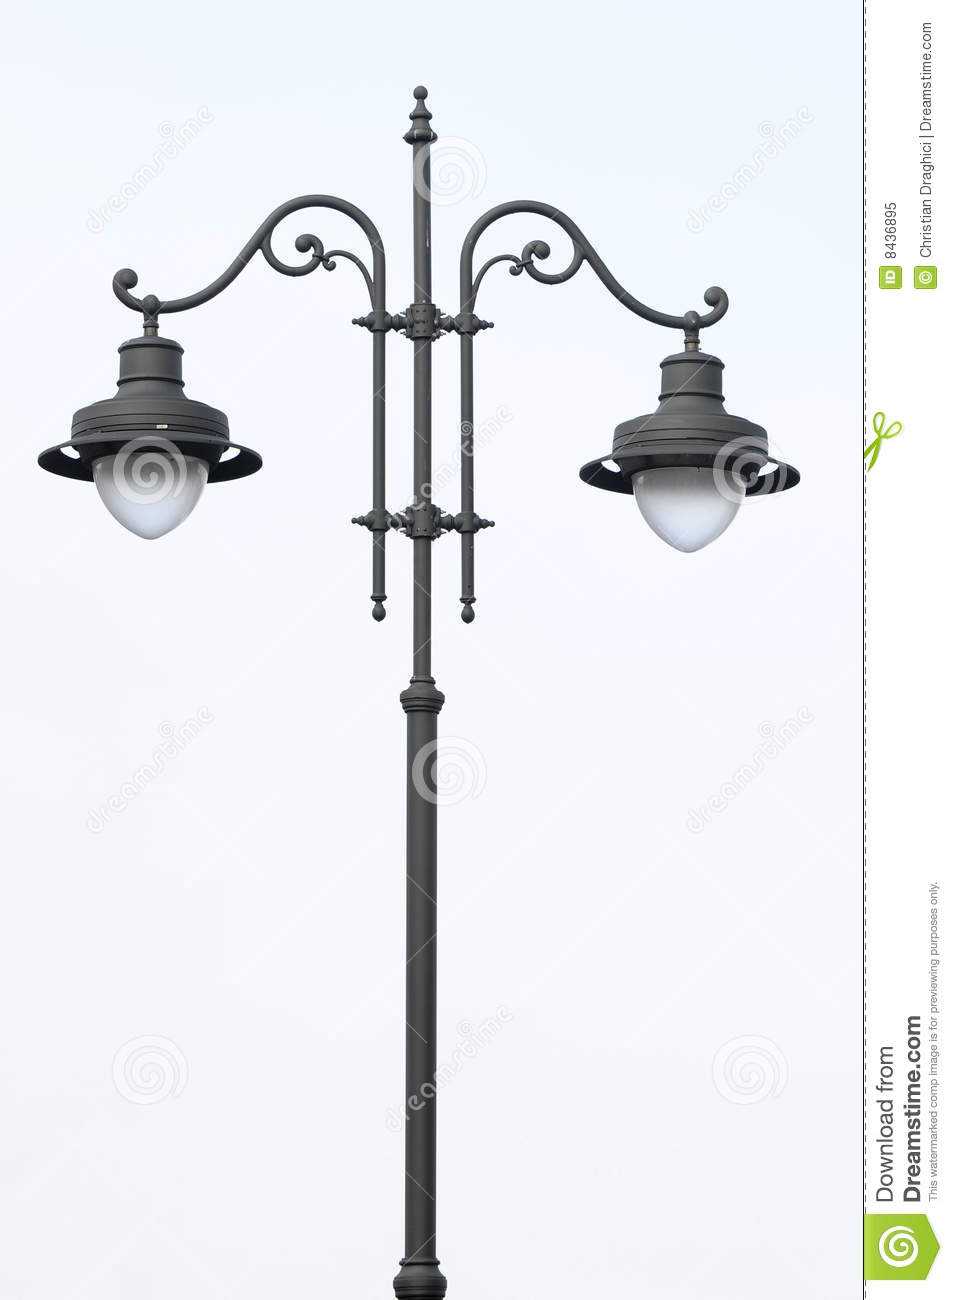 how to draw an old fashioned lamp post